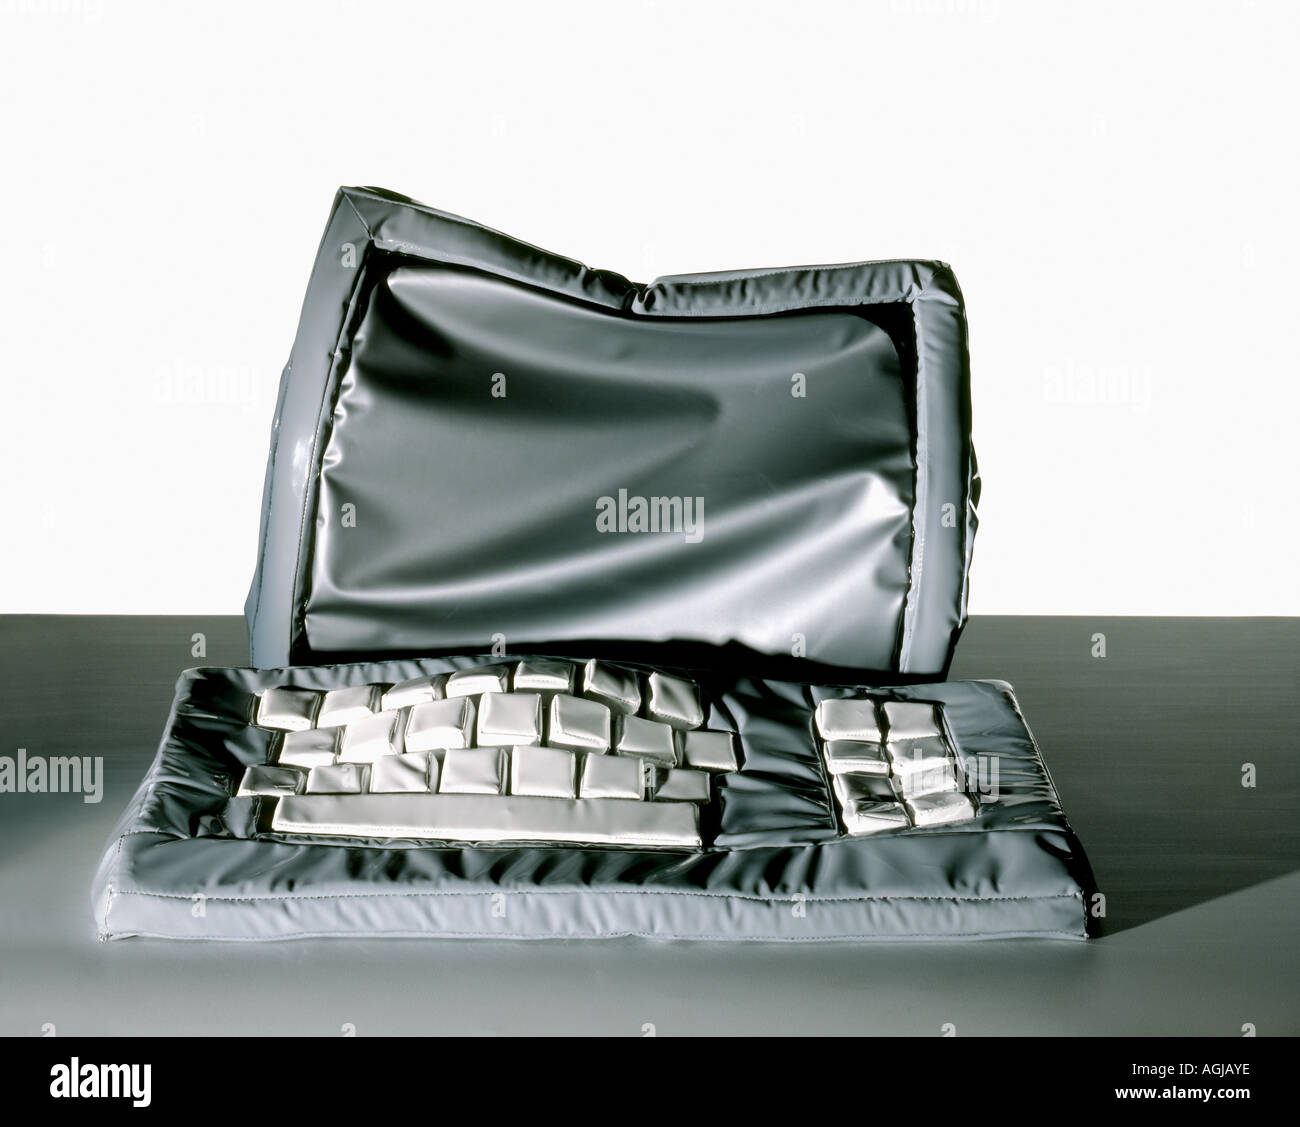 Computer Software illustrated by a 'soft sculpture' - Stock Image